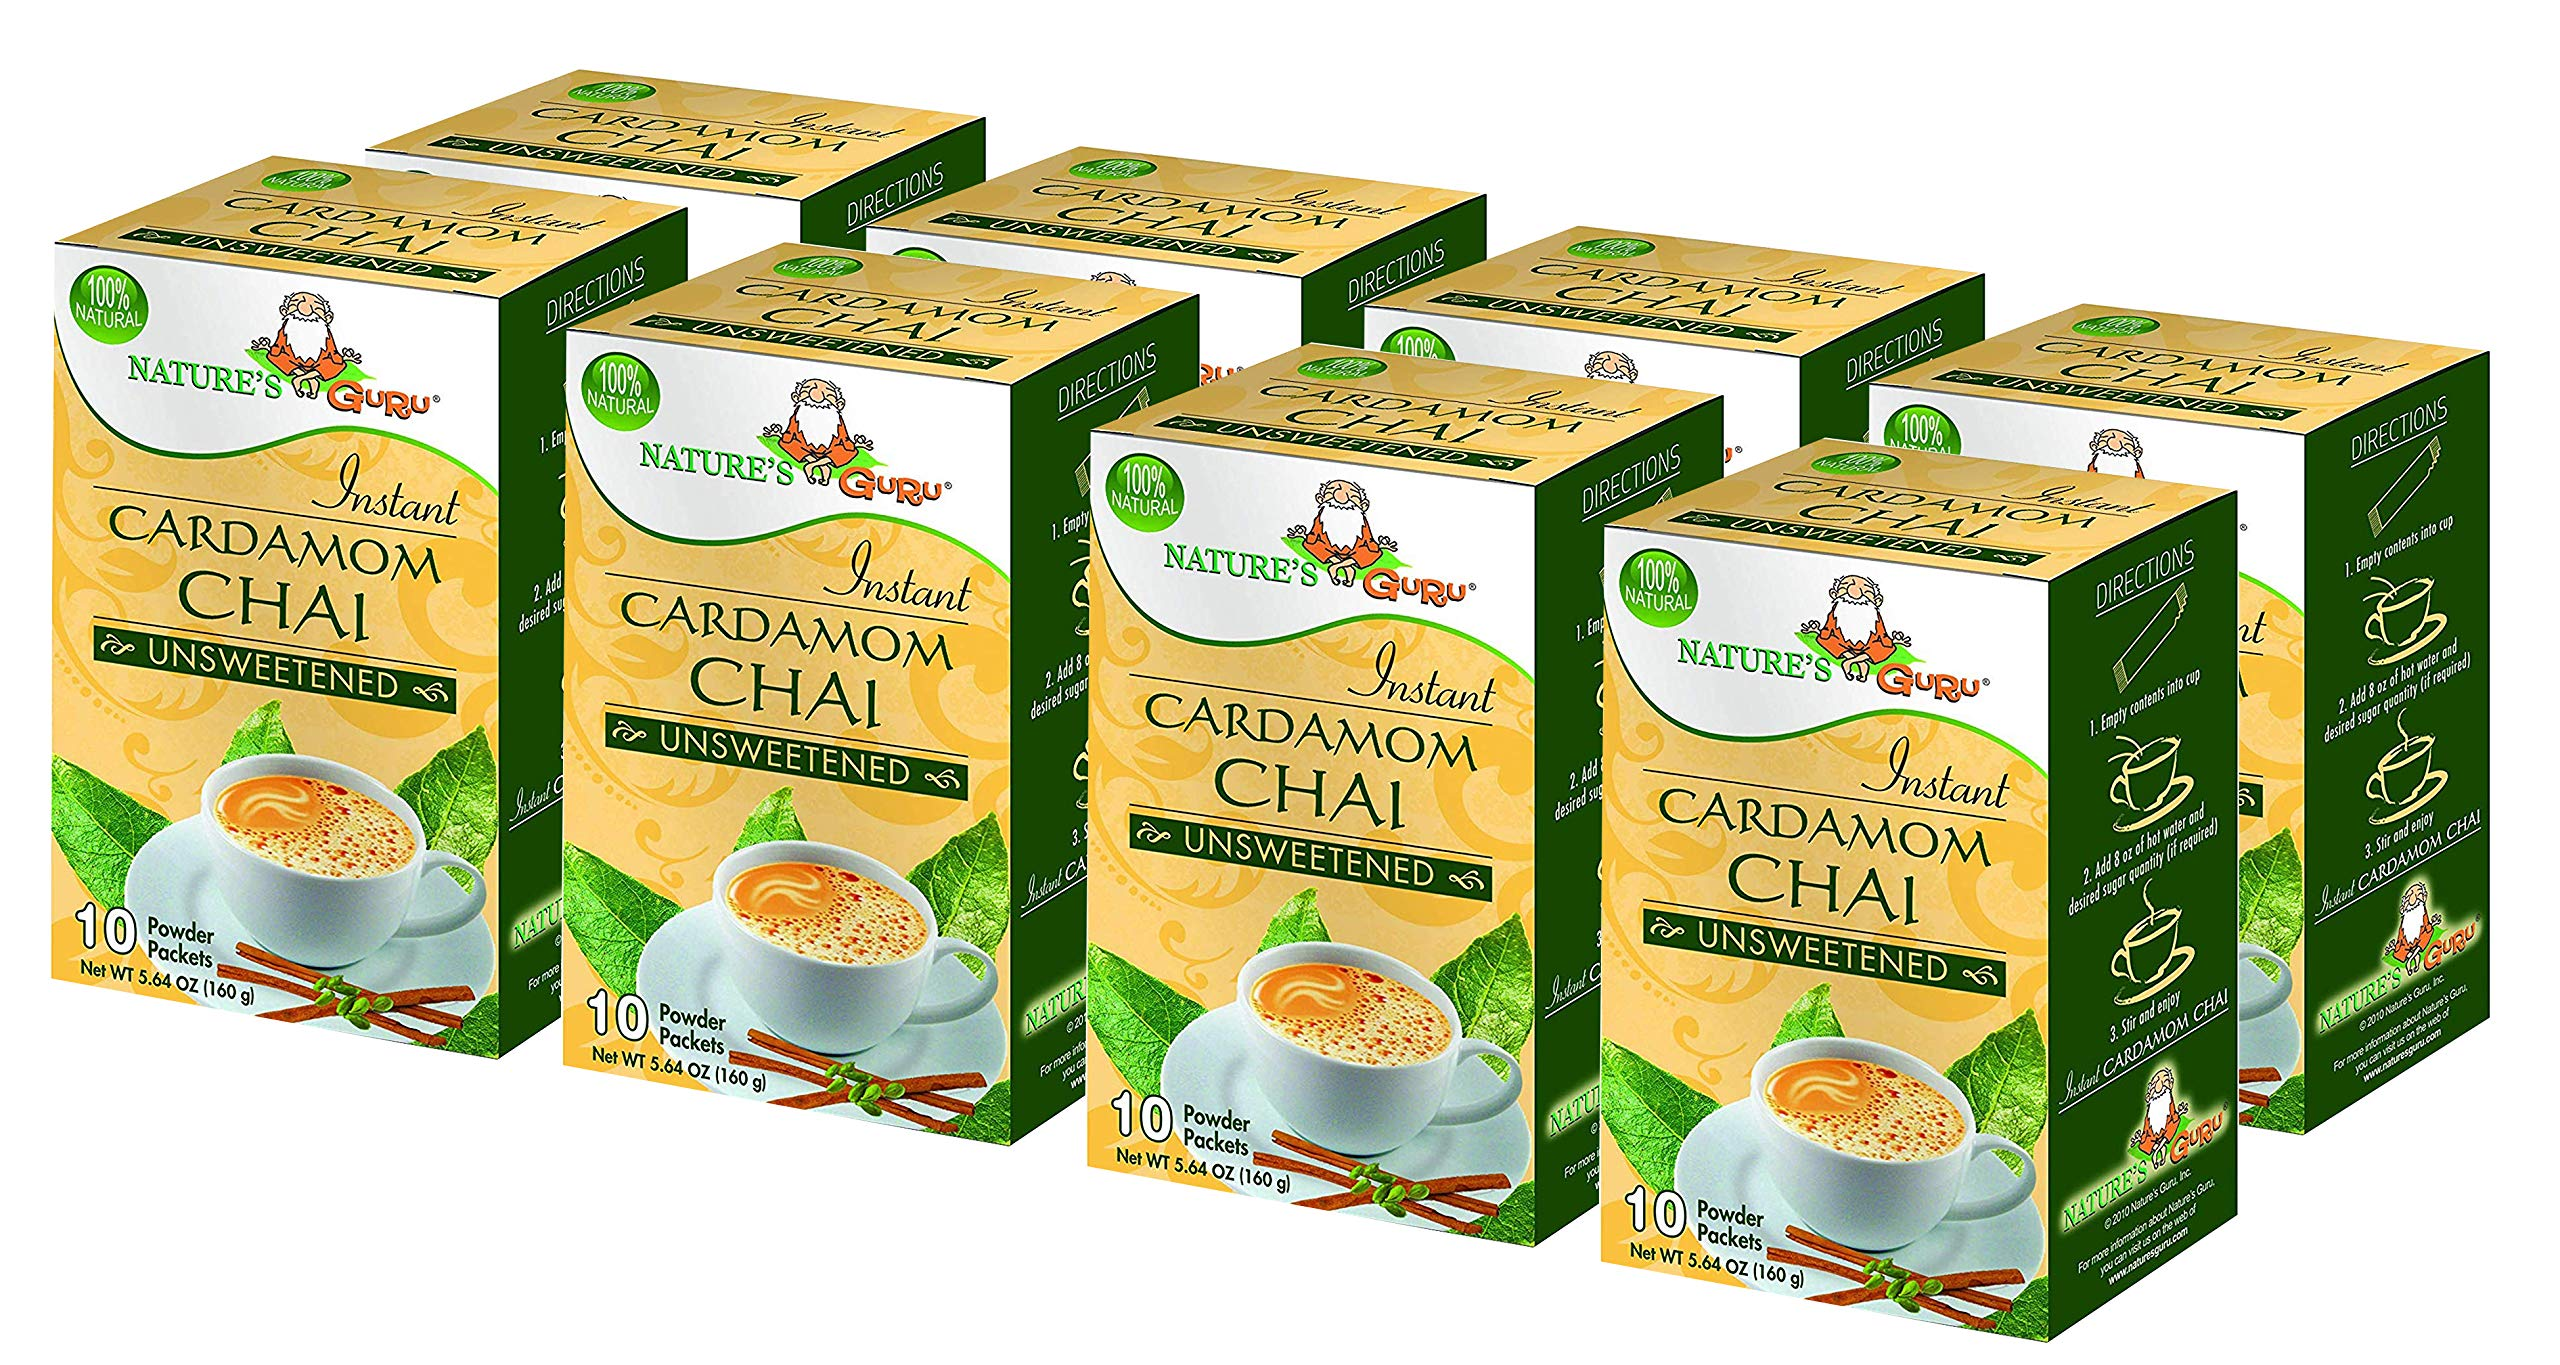 Nature's Guru Instant Cardamom Chai Tea Drink Mix, Unsweetened, 10 Count Single Serve On-the-Go Drink Packets (Pack of 8) by Nature's Guru